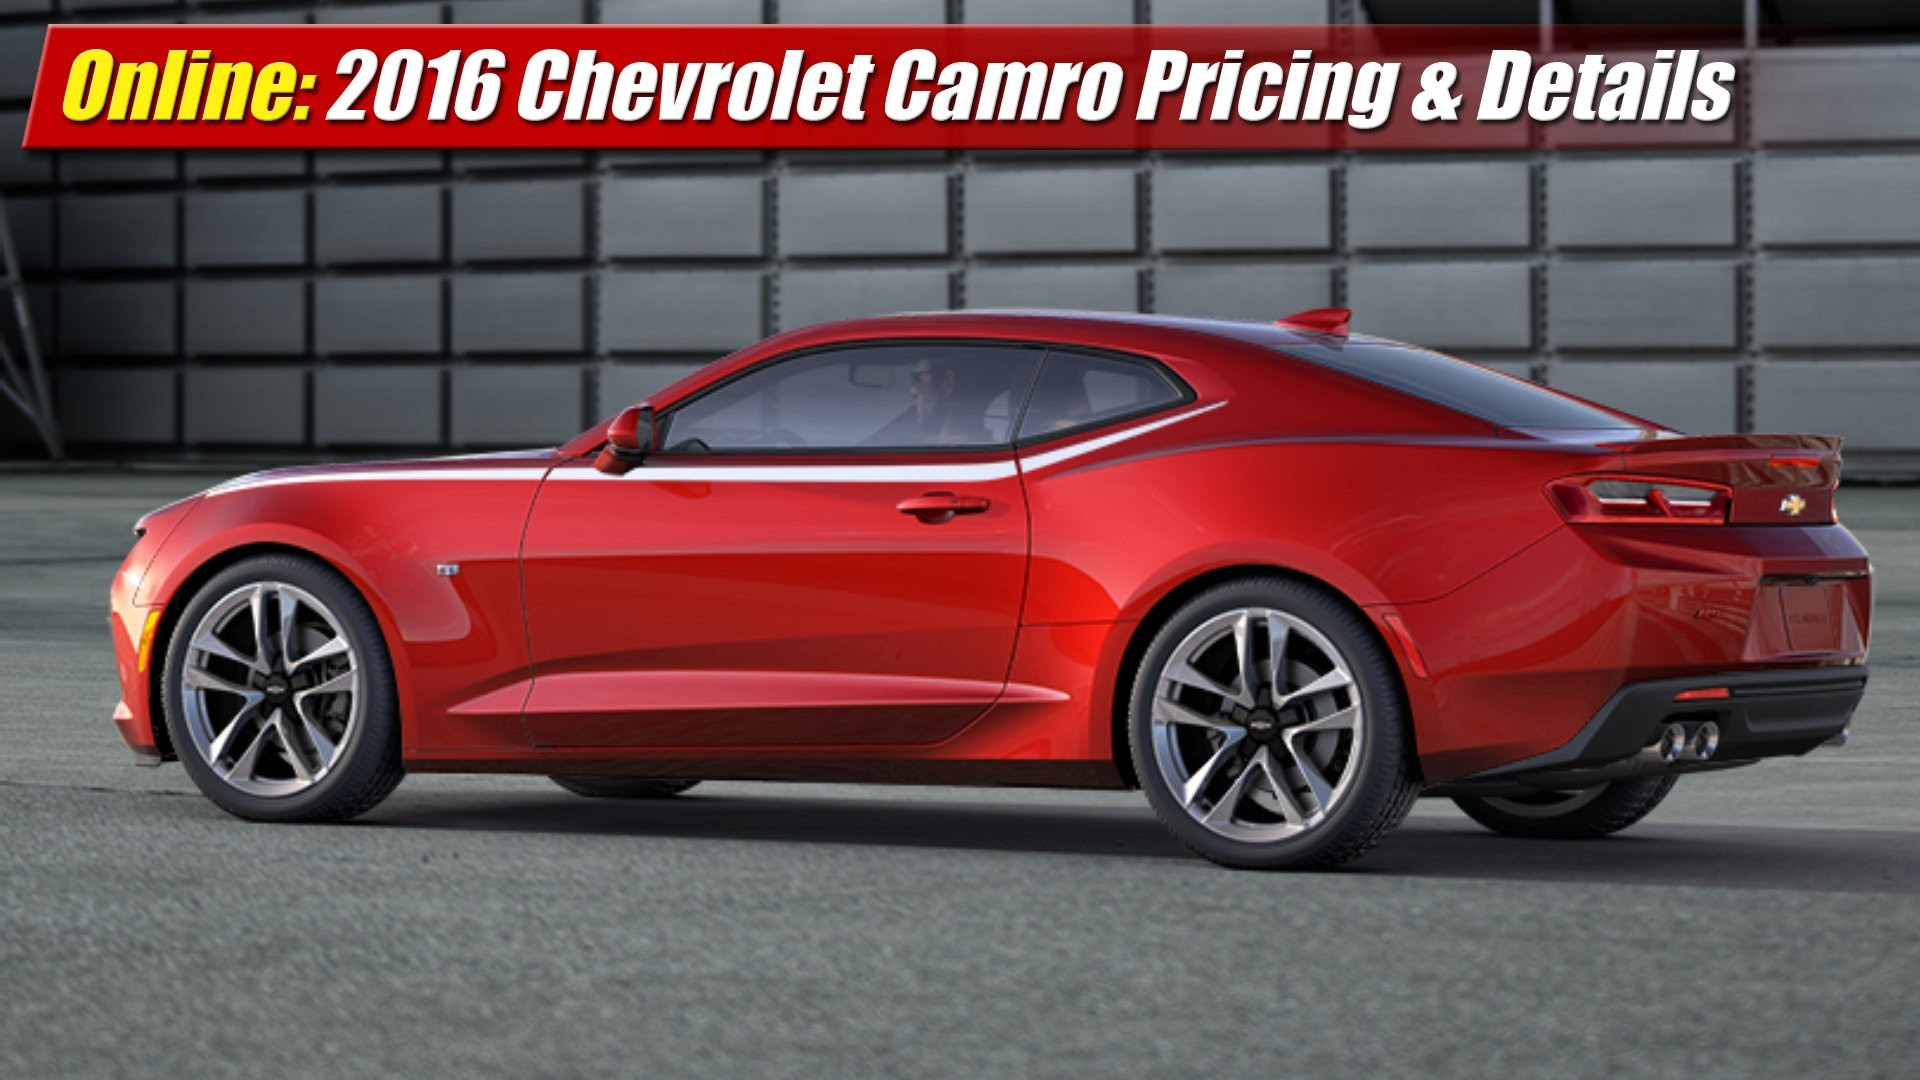 online 2016 chevrolet camaro pricing details testdriven tv. Black Bedroom Furniture Sets. Home Design Ideas